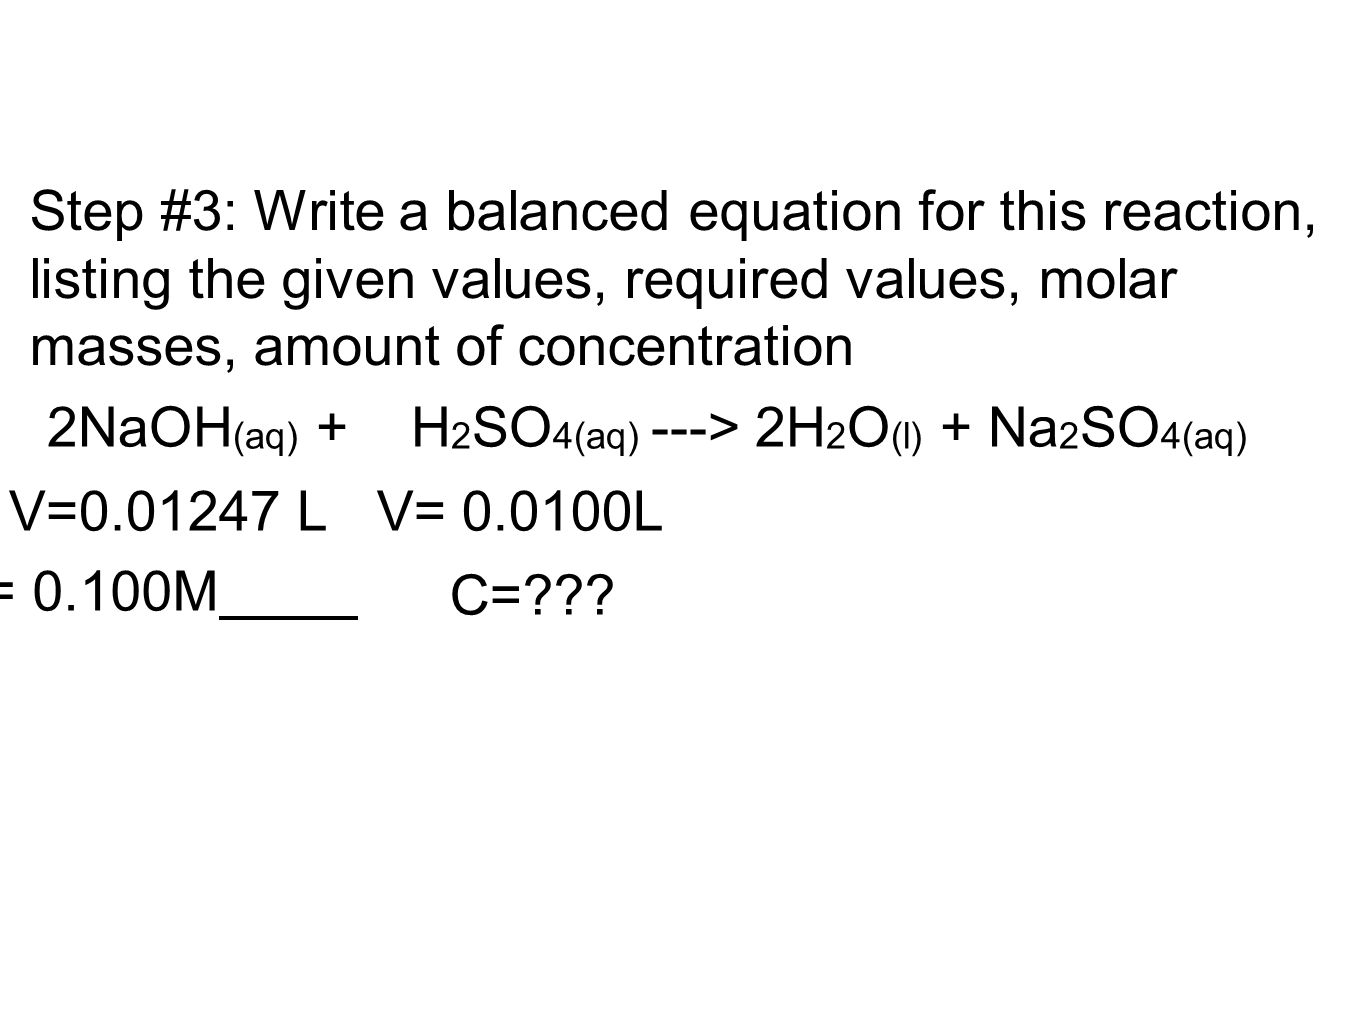 Step #3: Write a balanced equation for this reaction, listing the given values, required values, molar masses, amount of concentration